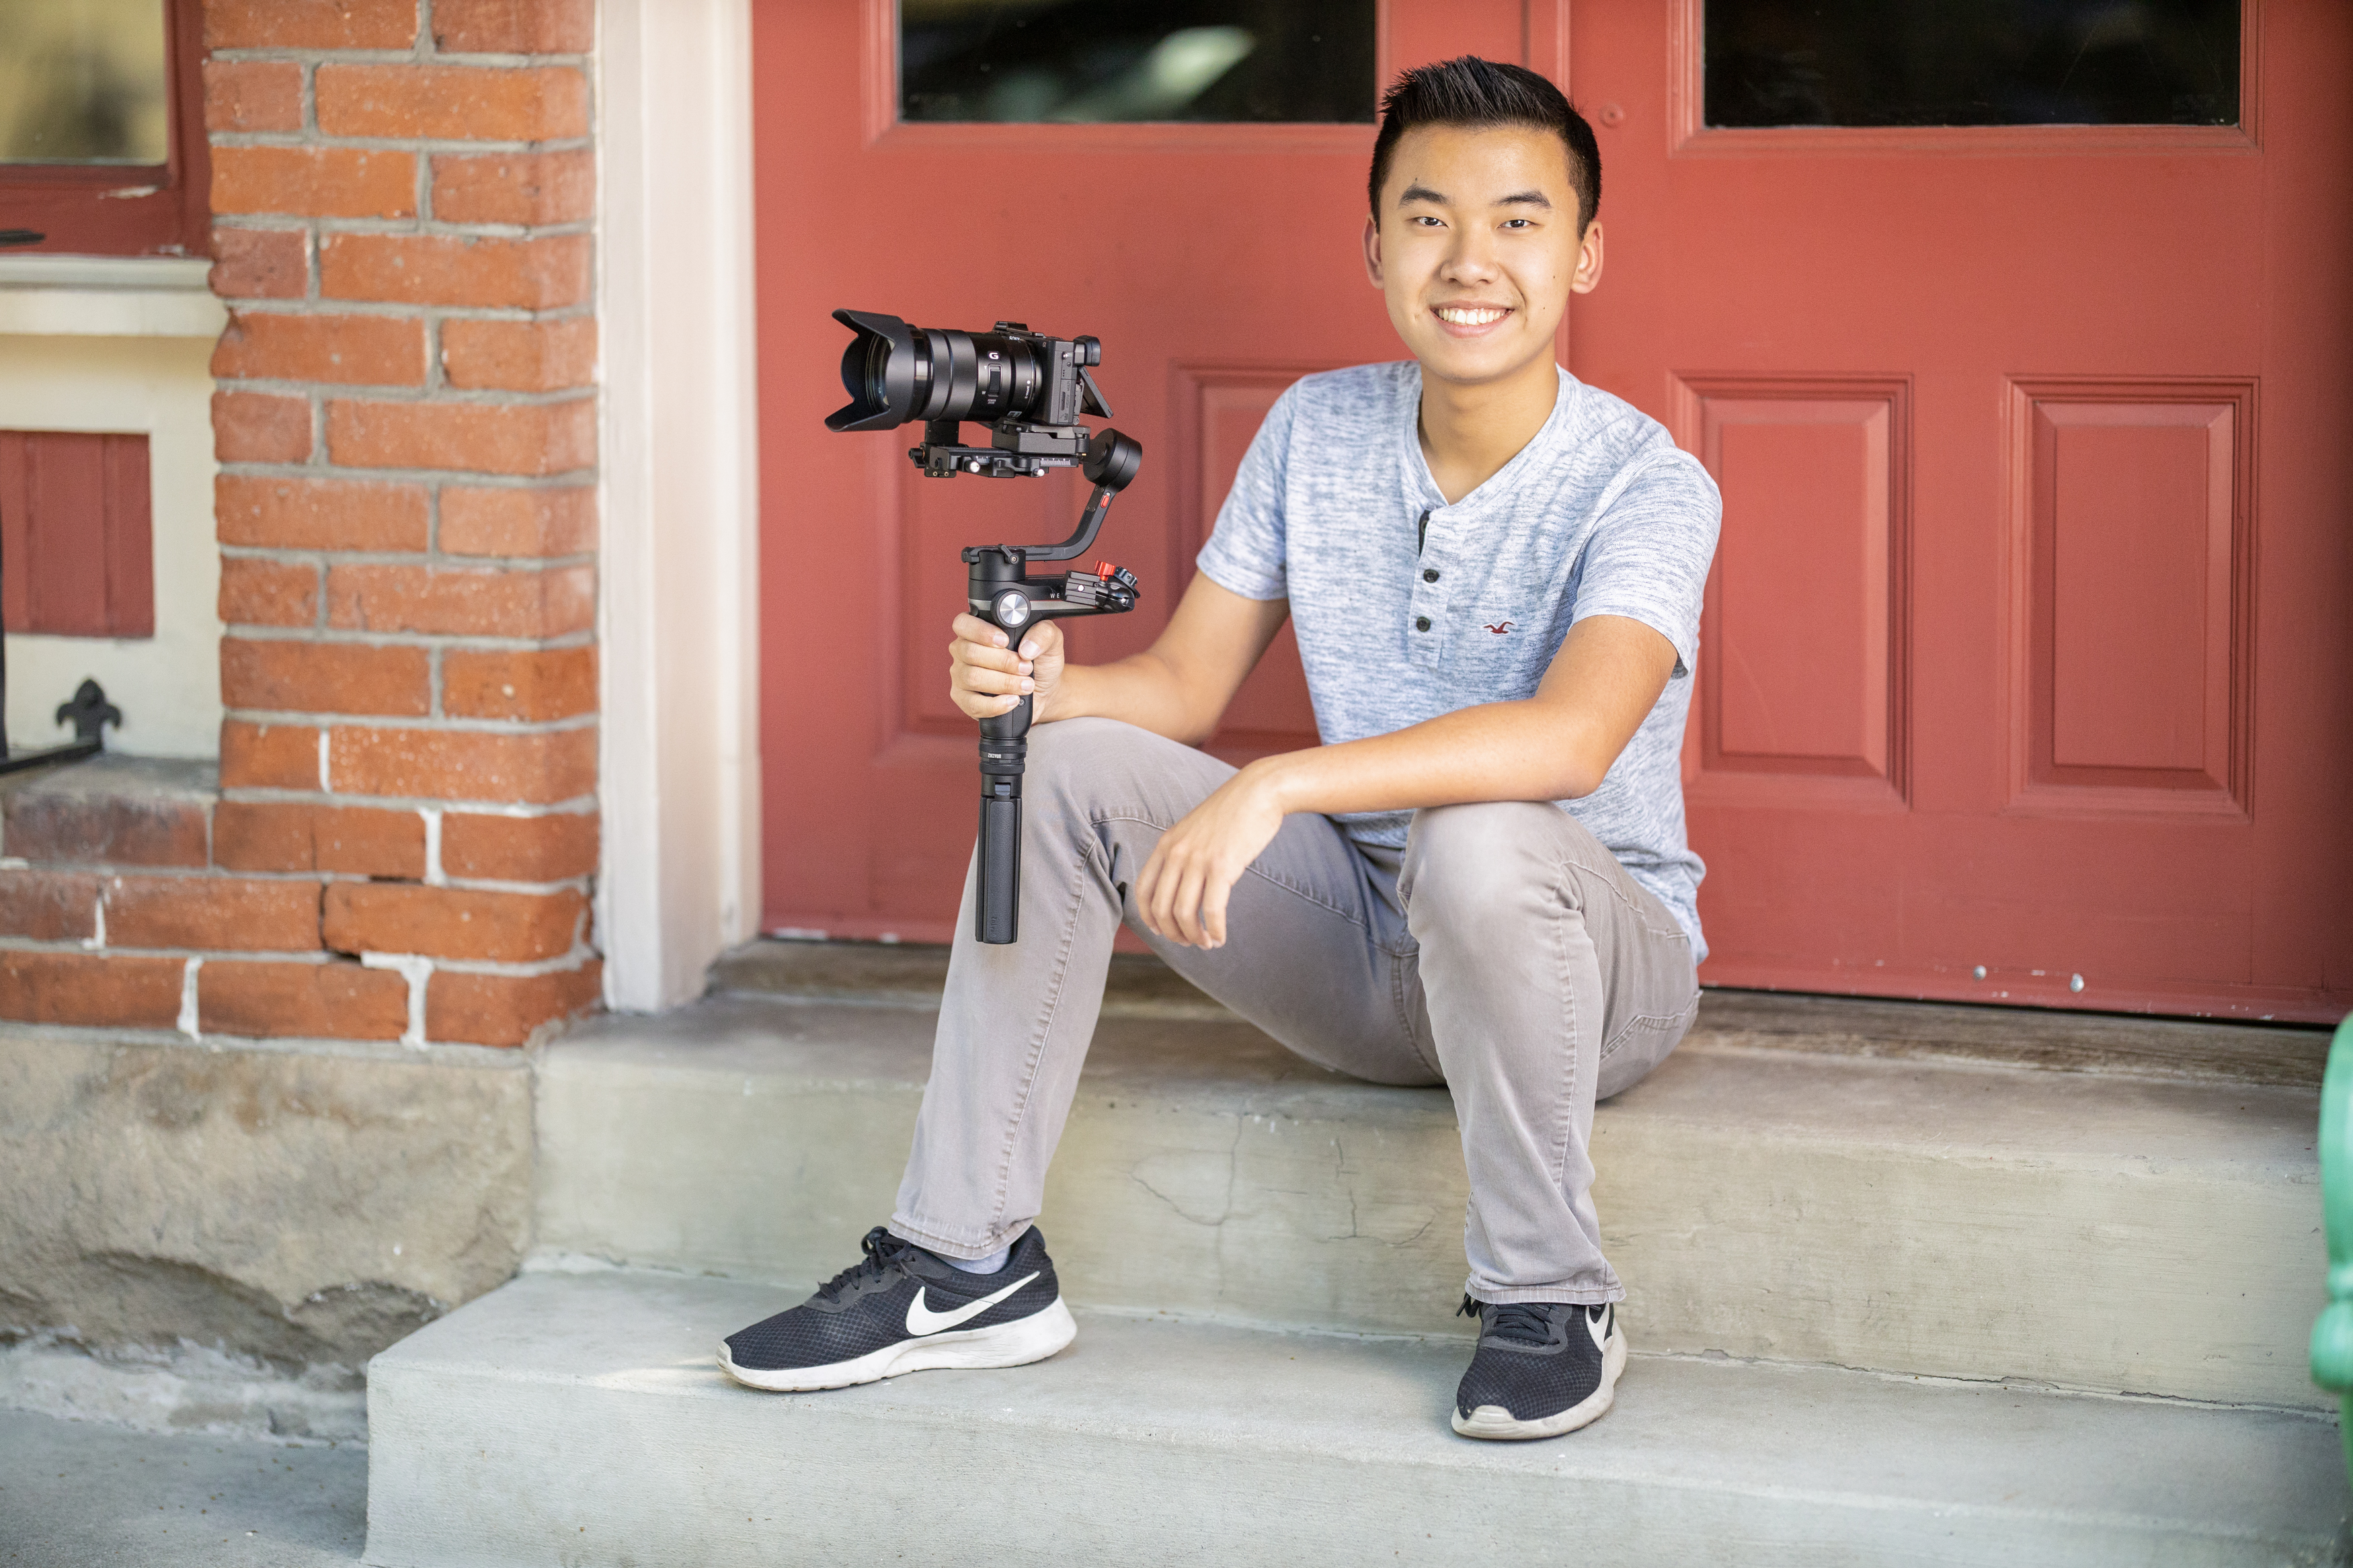 Young man sitting on a porch with video equipment